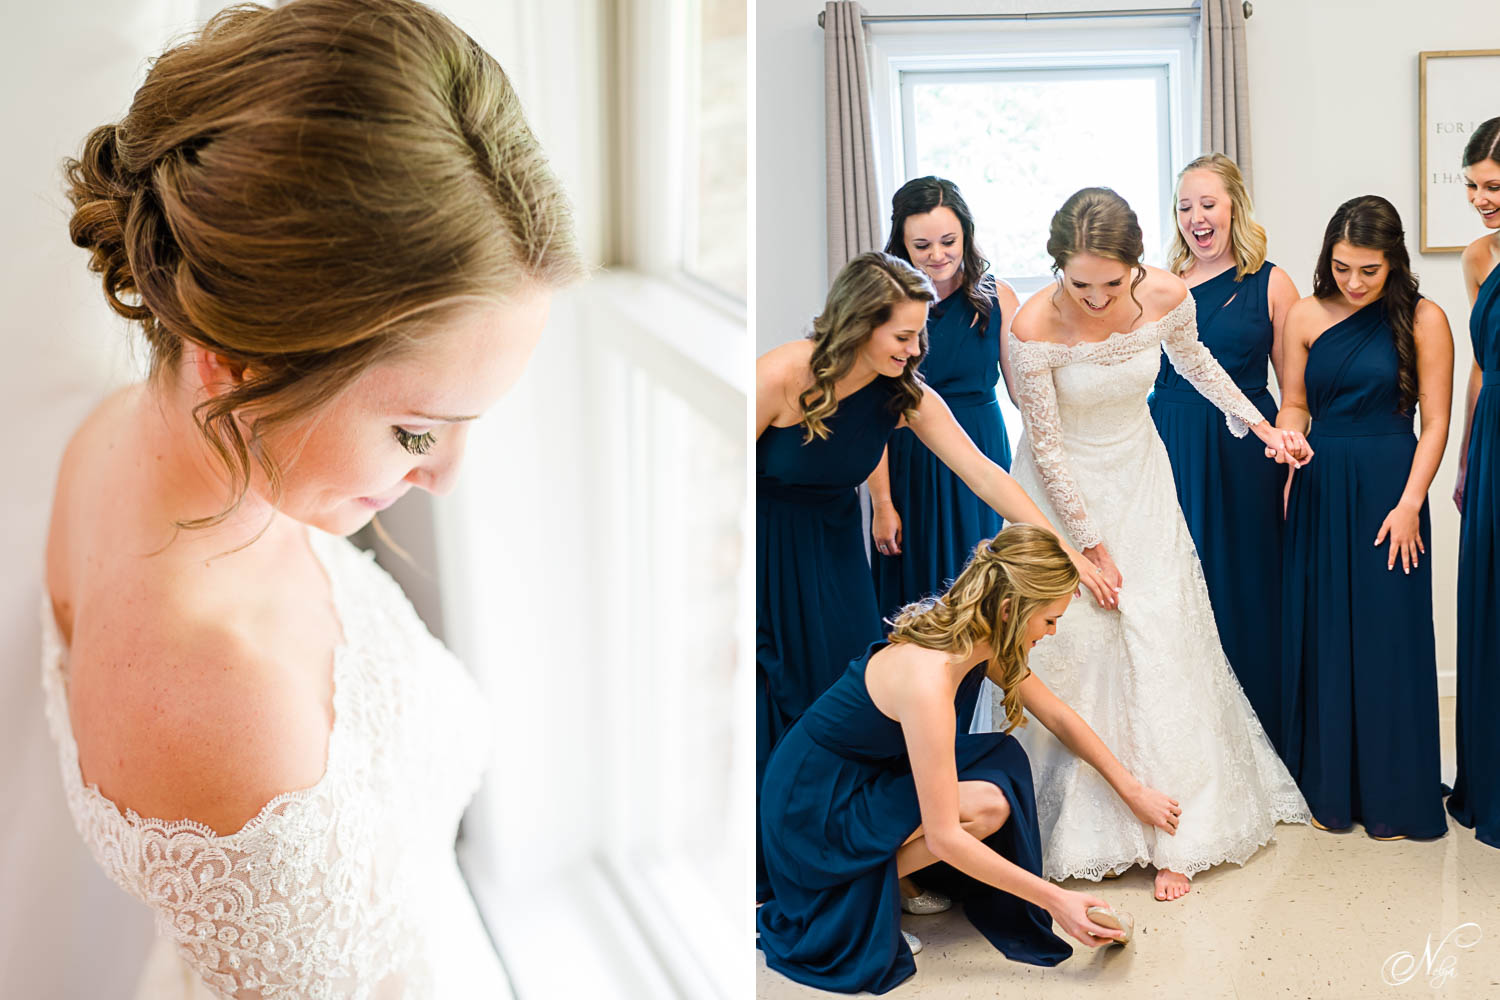 bride looking out the window. And bridesmaids in navy floor length dresses gathered around the bride